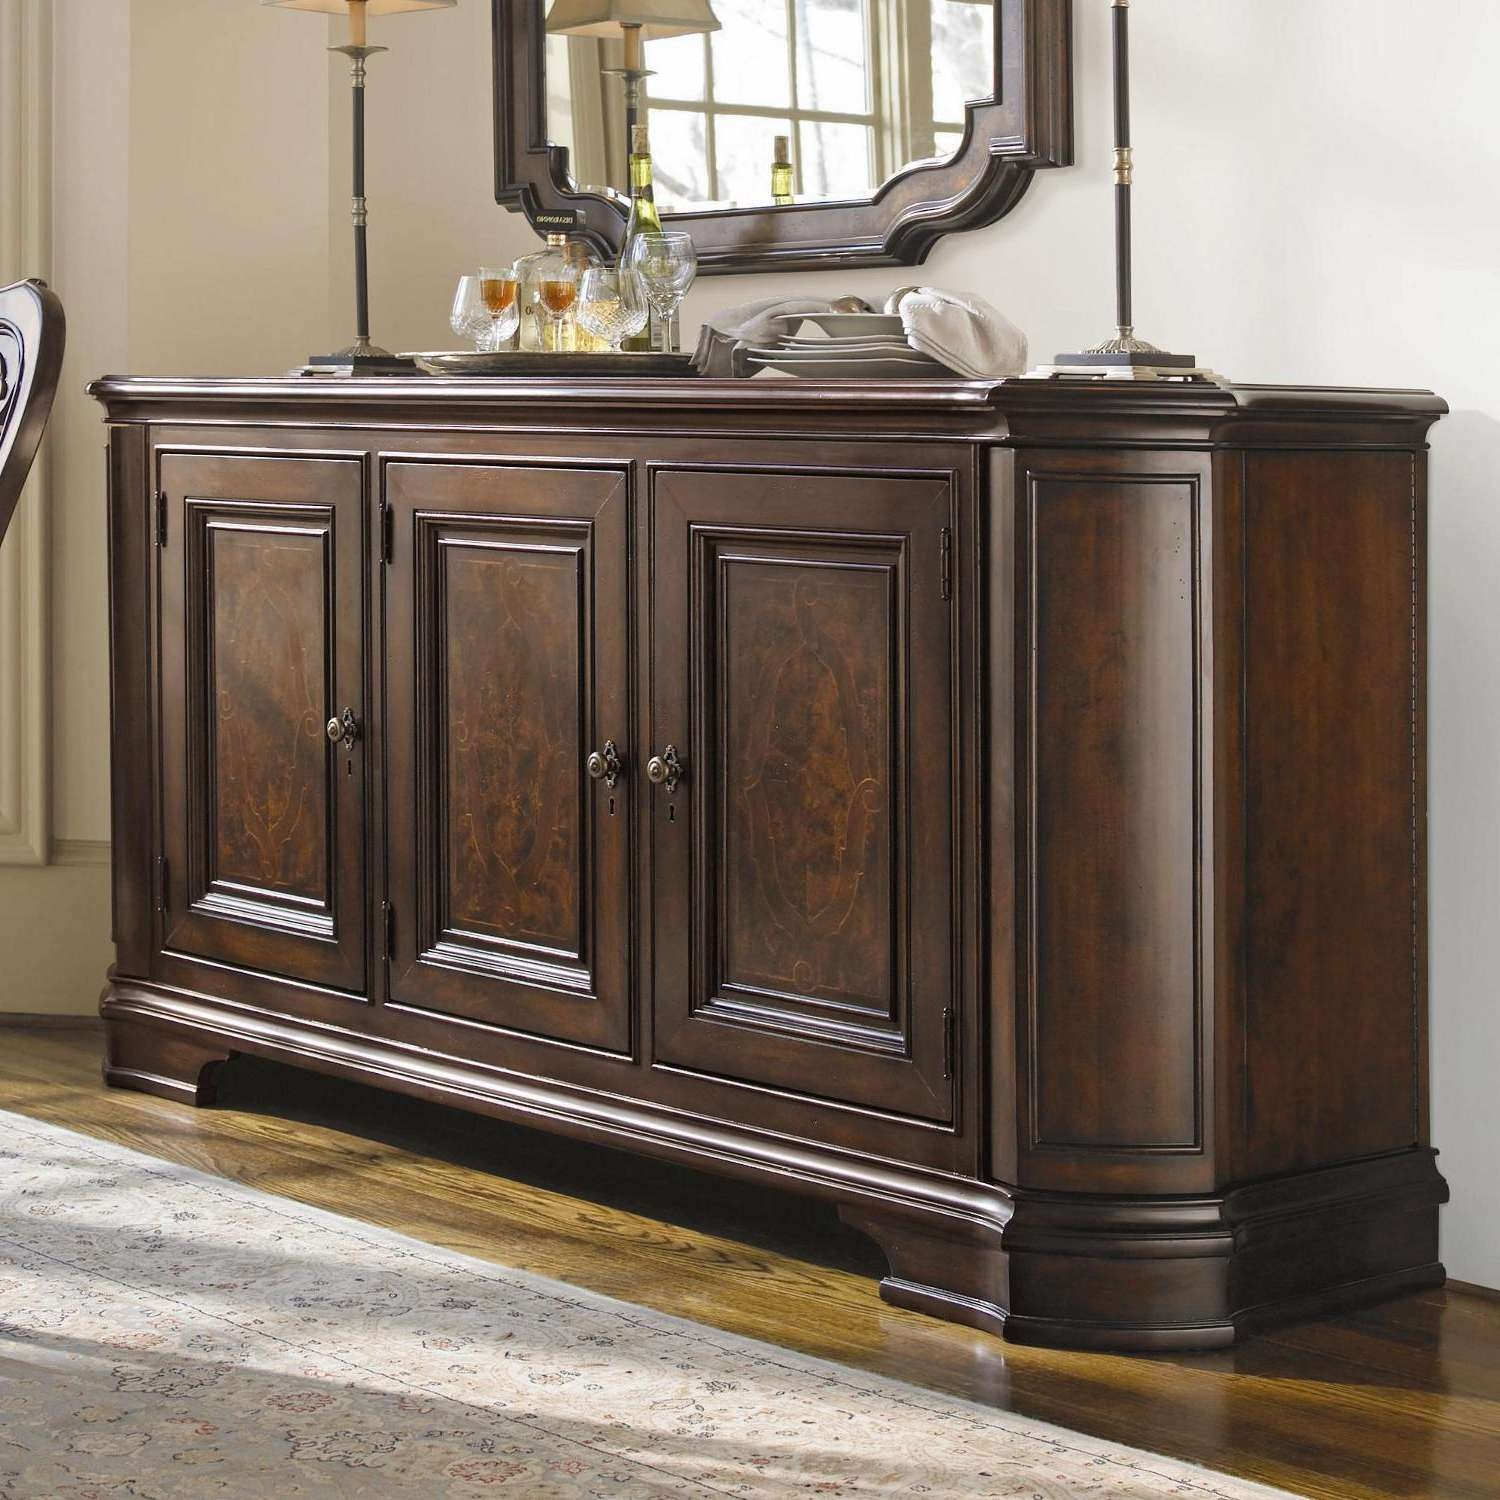 Inspirational Dining Room Sideboards And Buffets – Bjdgjy Regarding Dining Room With Sideboards (View 18 of 20)